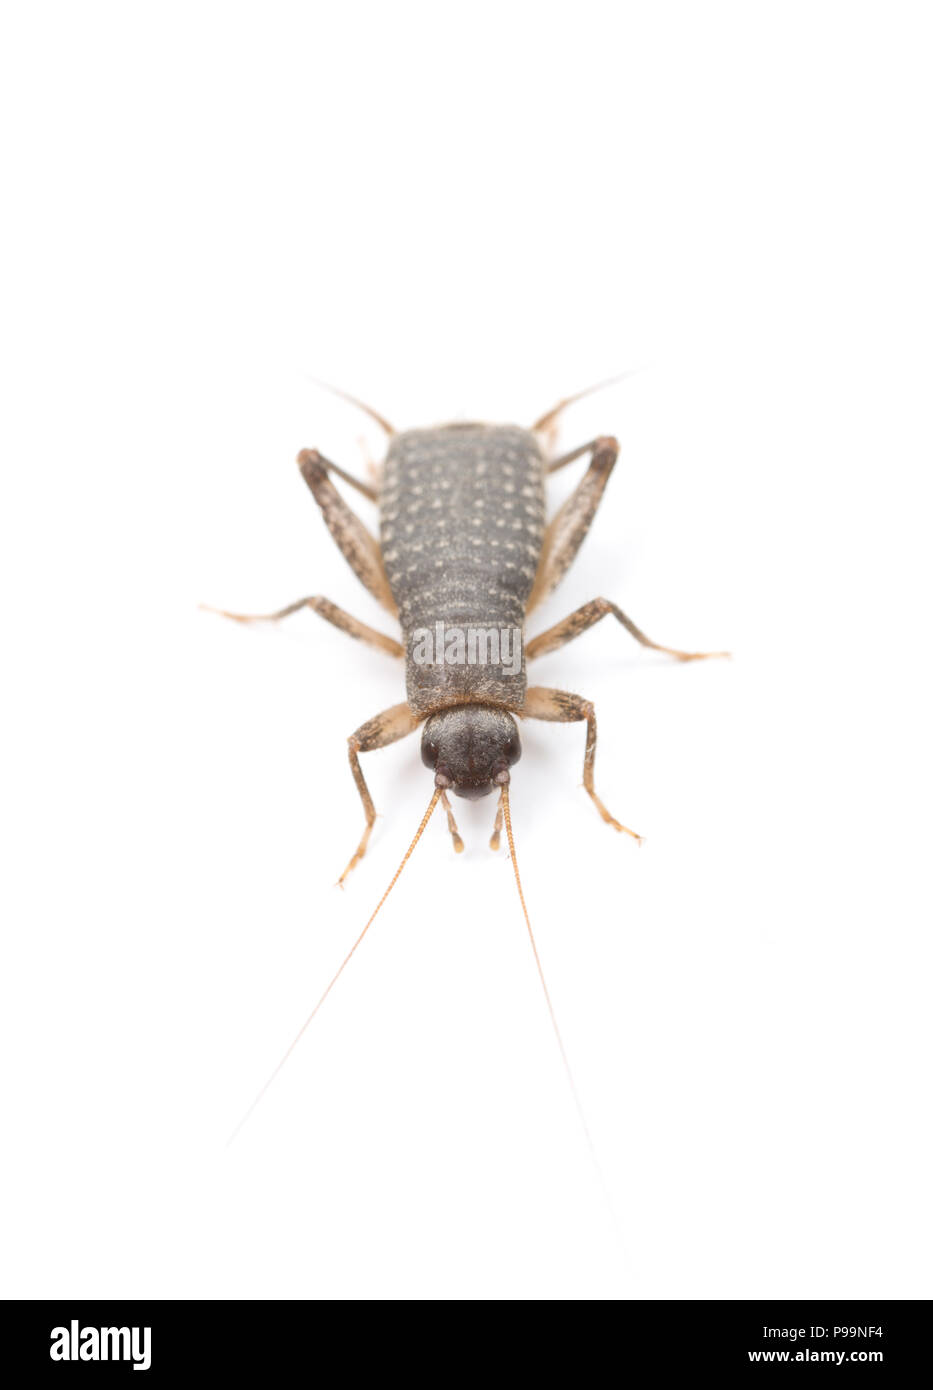 A male scaly cricket, Pseudomogoplistes vicentae, found on Chesil Beach, Dorset and photographed on a white background before release. There are only  - Stock Image